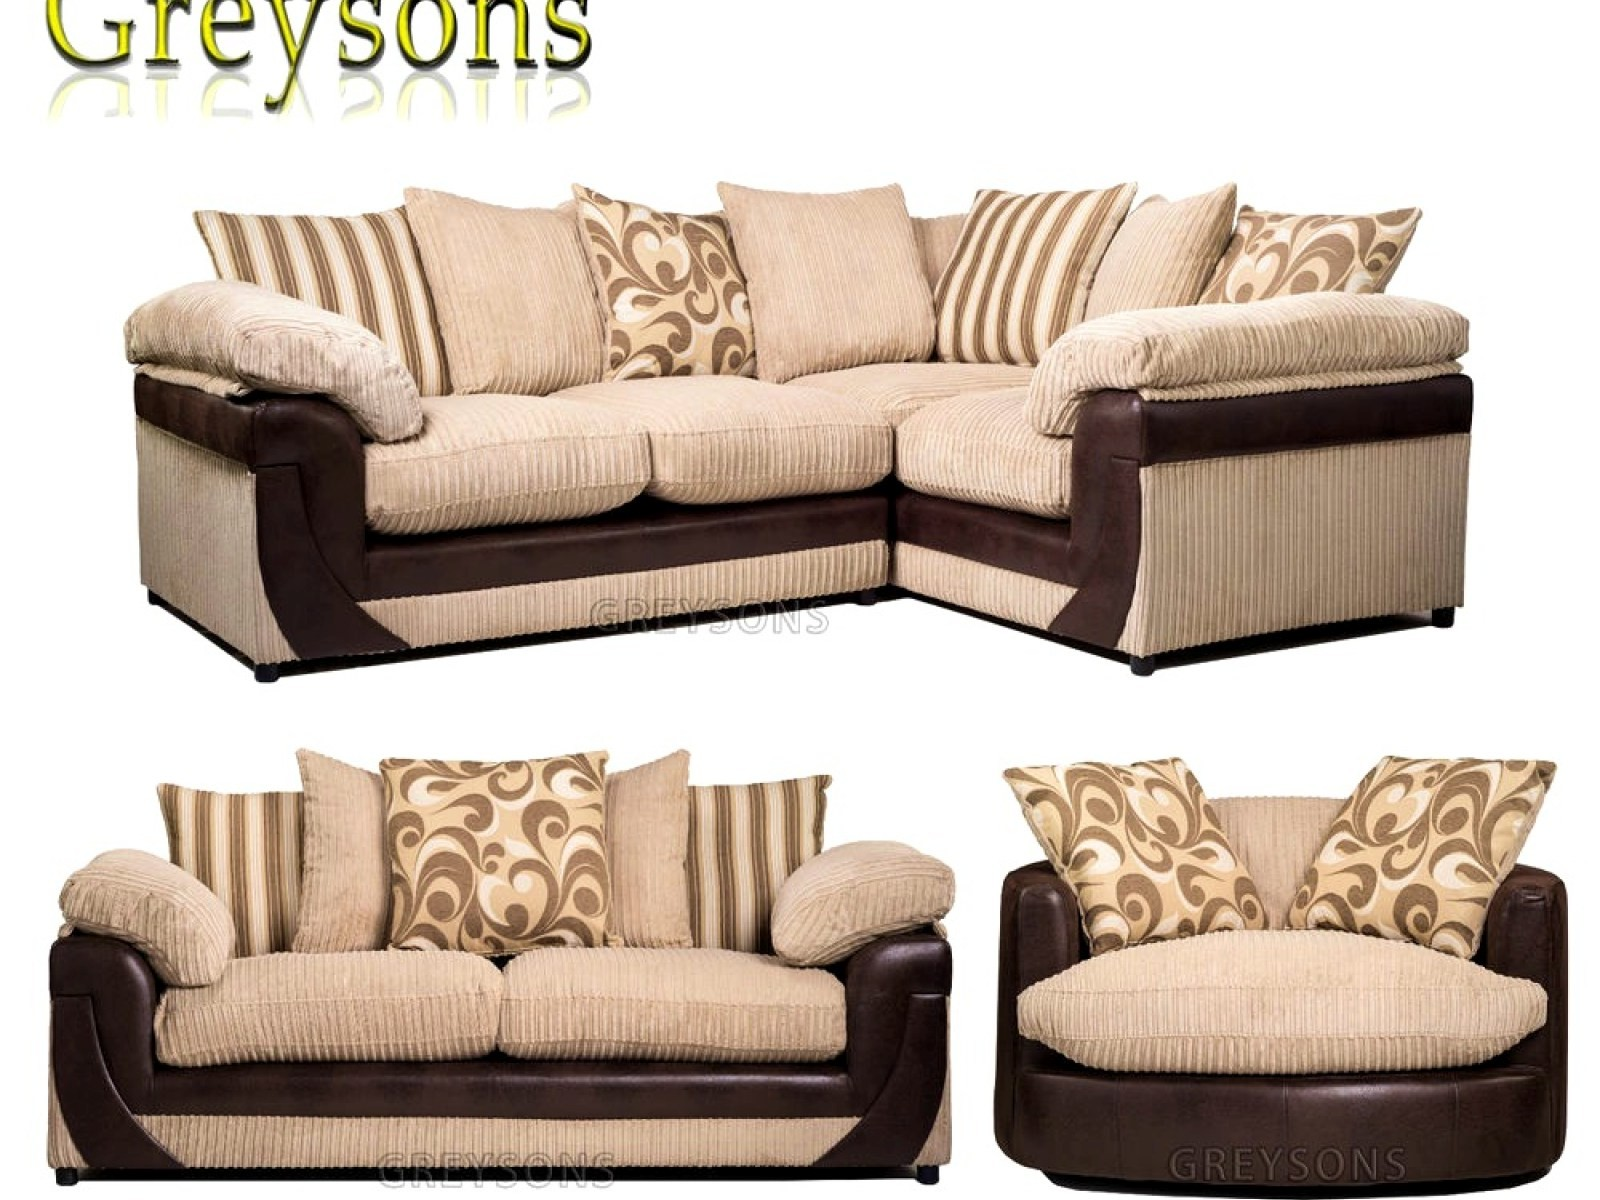 Appealing Whats The Difference Between Sofa And Couch Vs